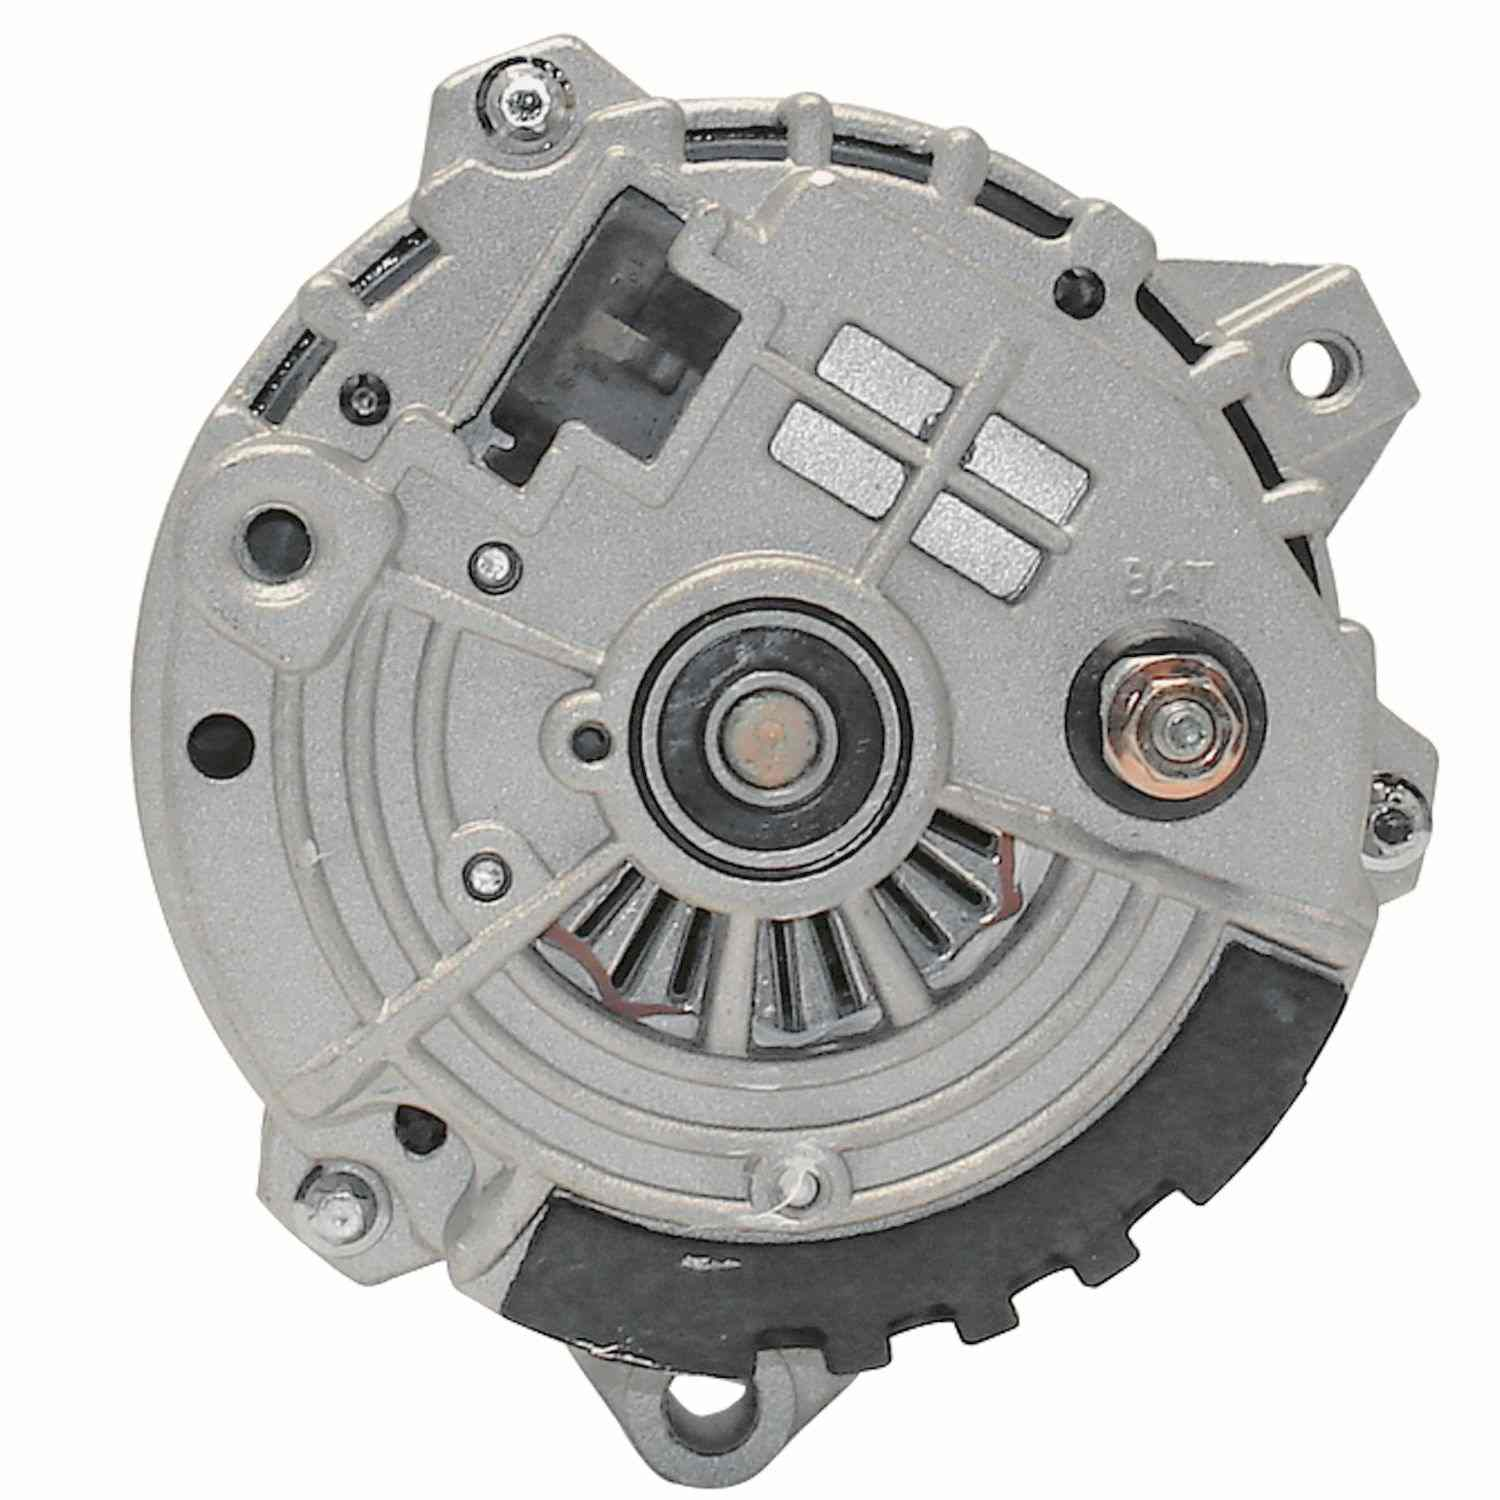 ACDELCO PROFESSIONAL - Reman Alternator - DCC 334-2396A